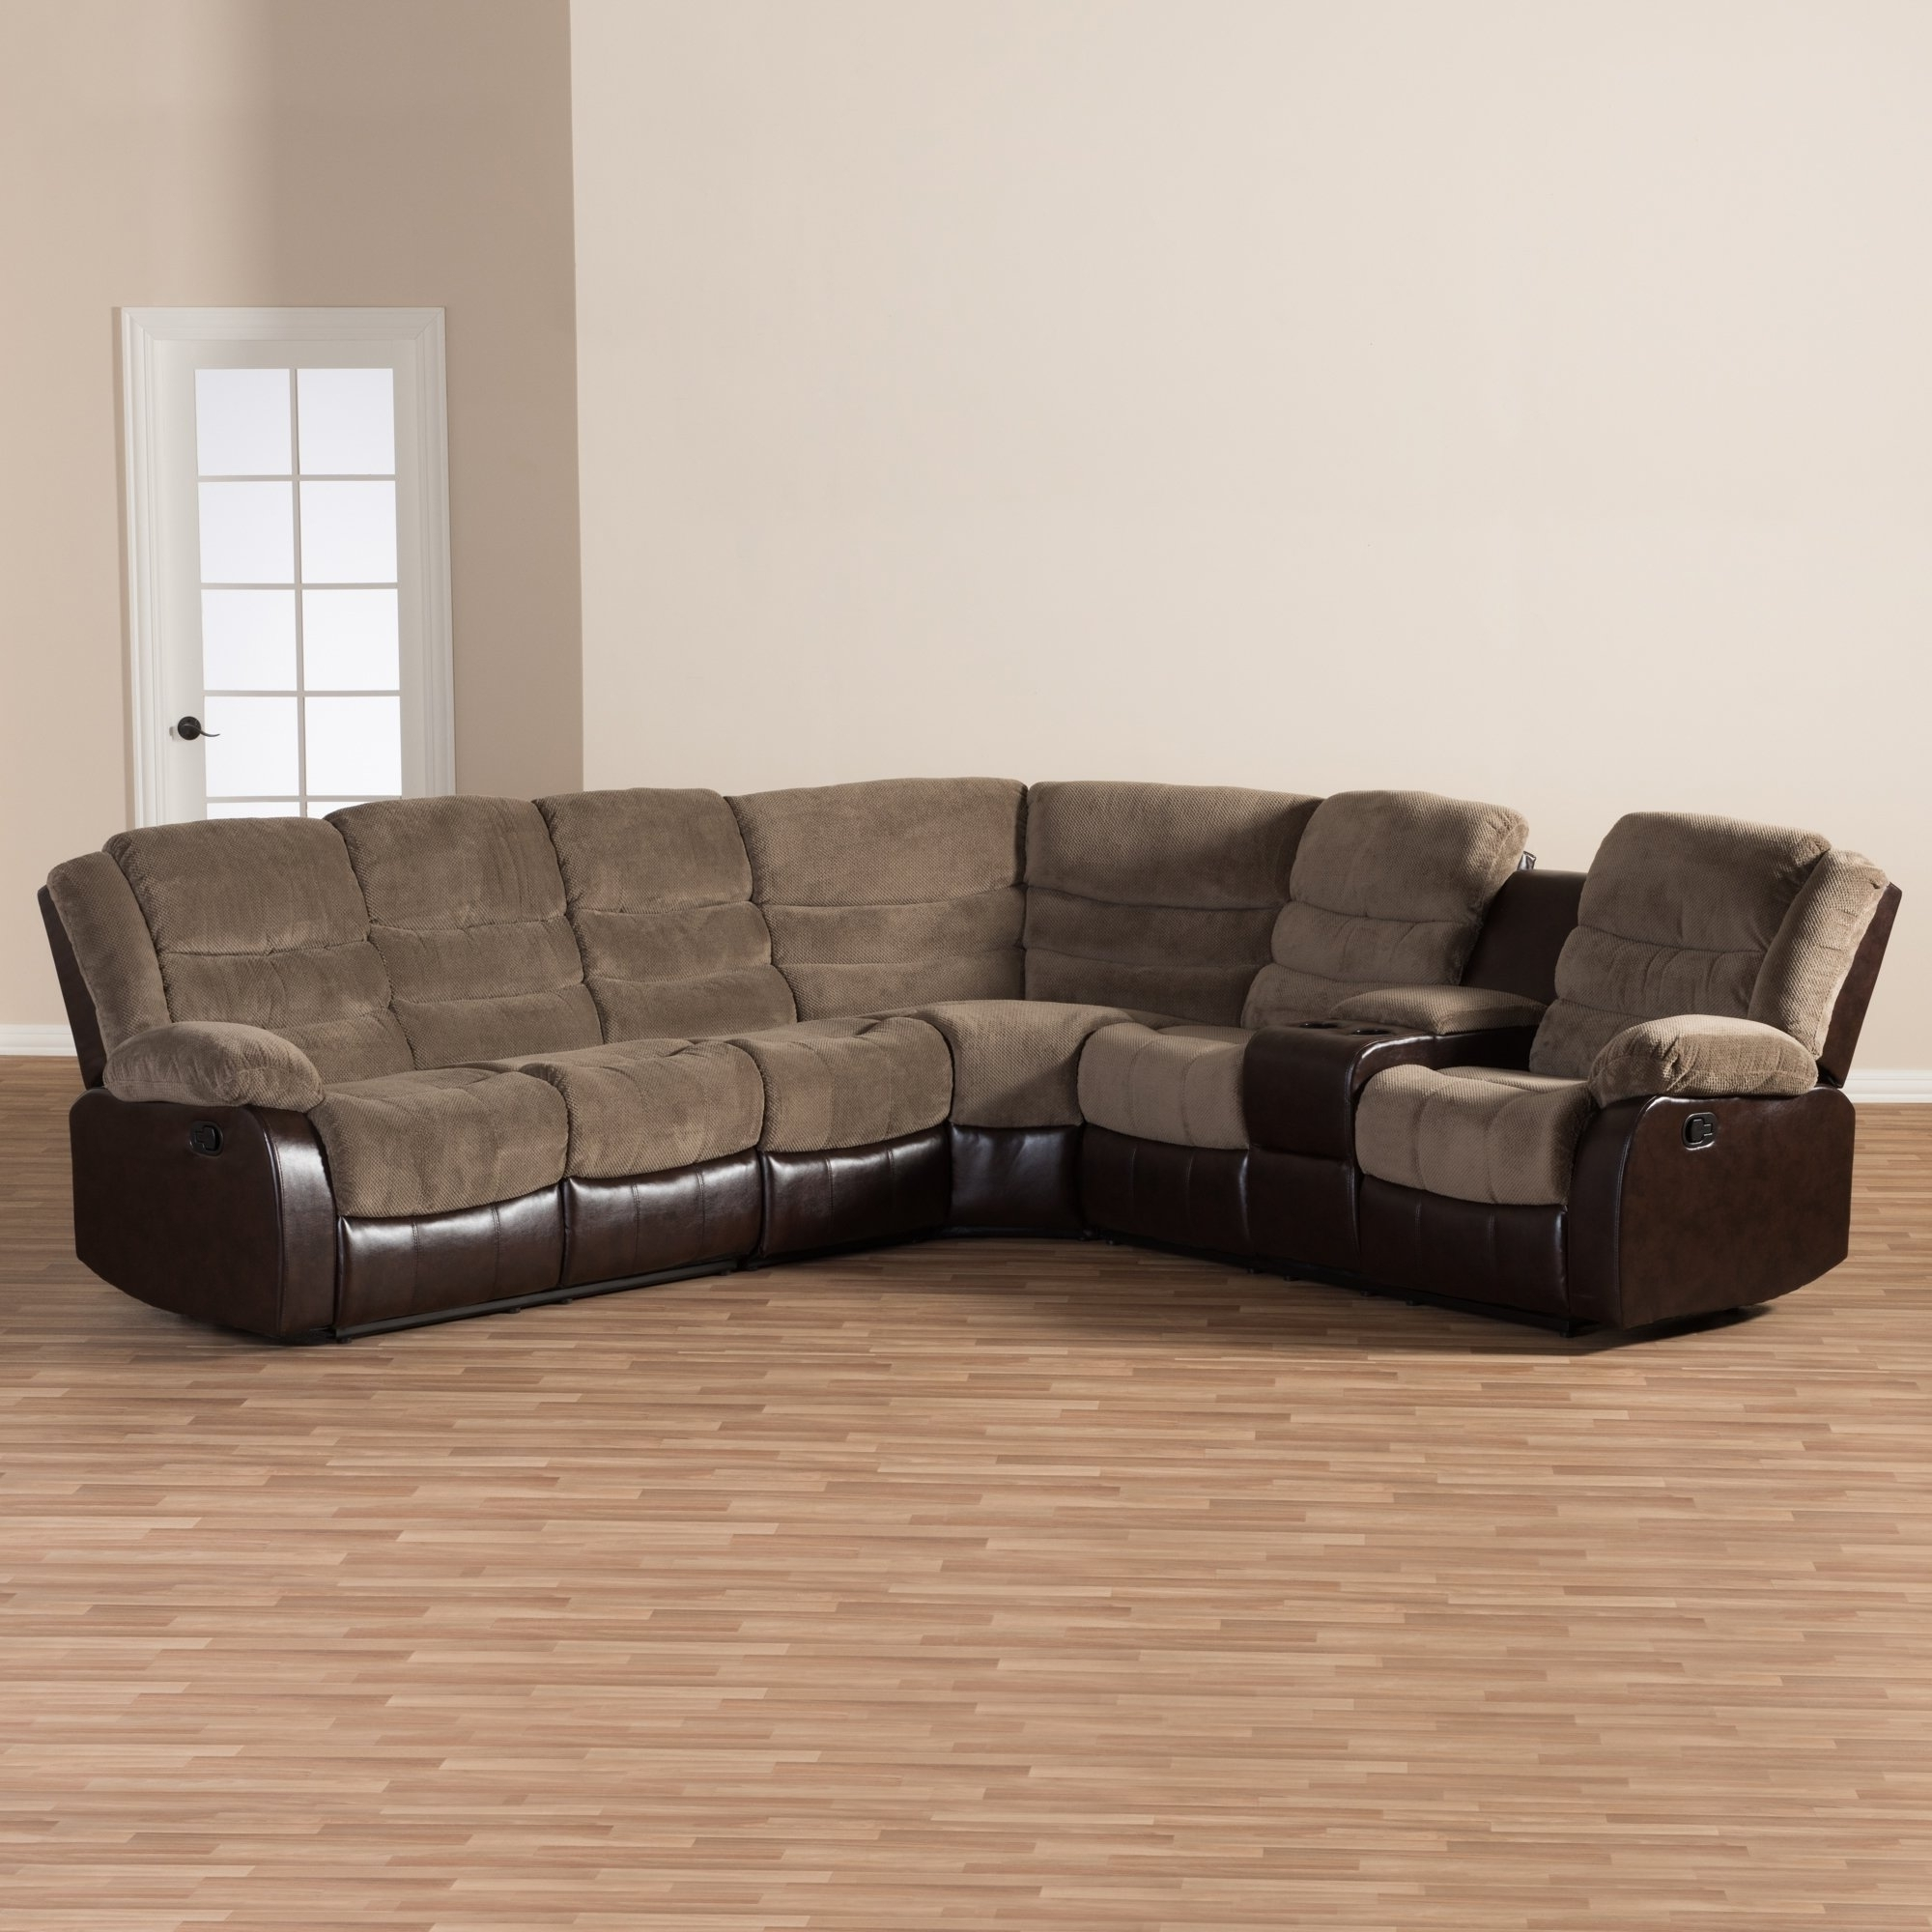 Current Braxton Sectional Sofas Regarding Braxton Leather Sectional Sofa • Leather Sofa (View 15 of 15)